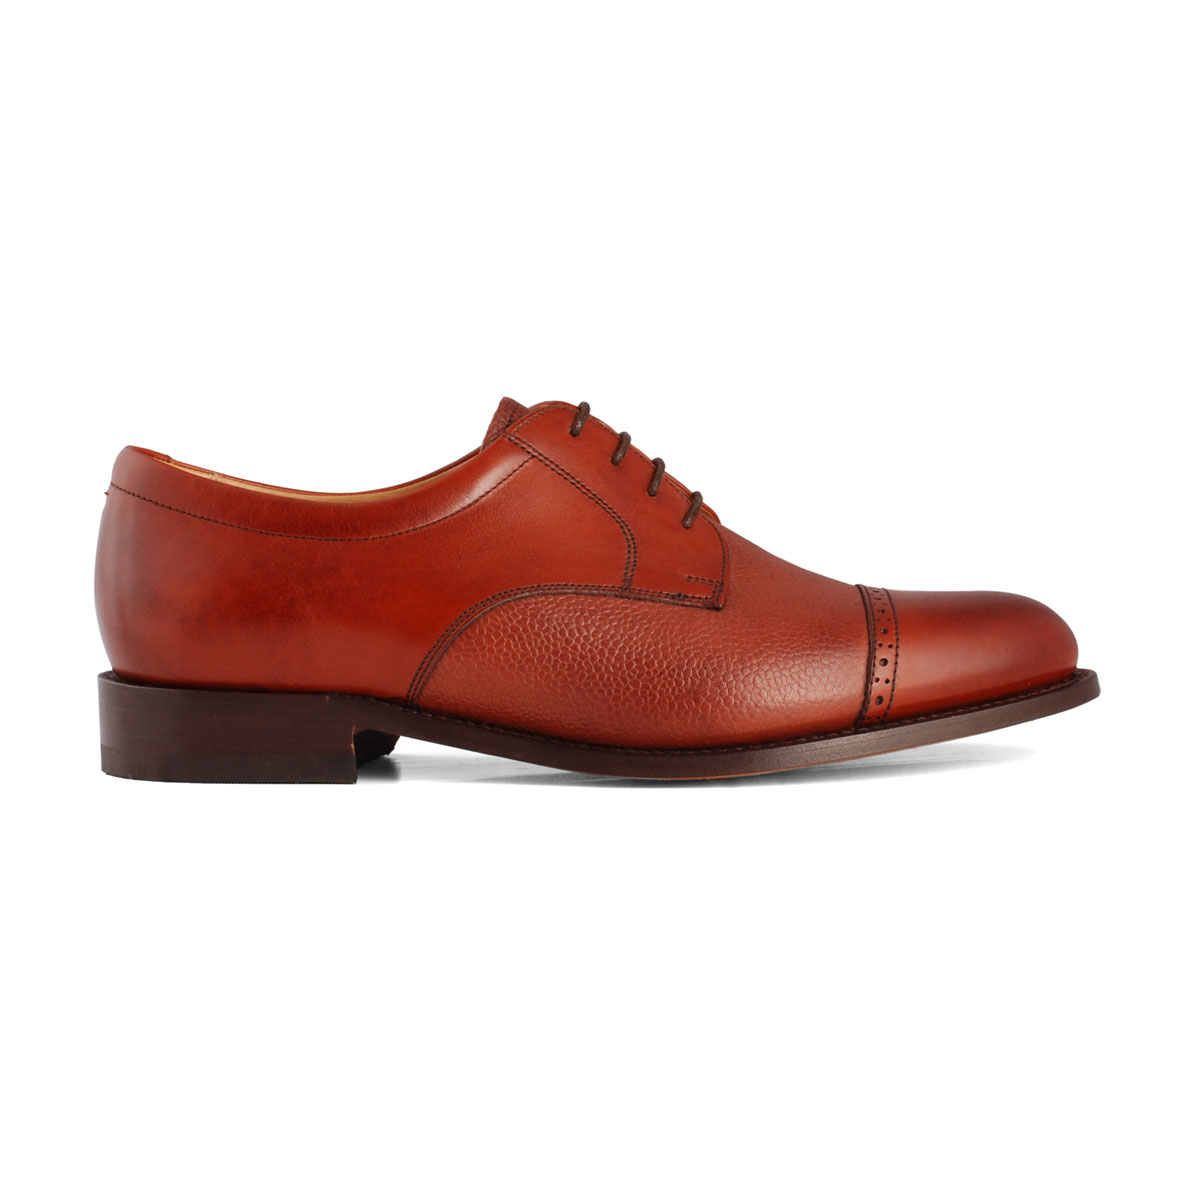 Barker Staines Rosewood Grain shoes